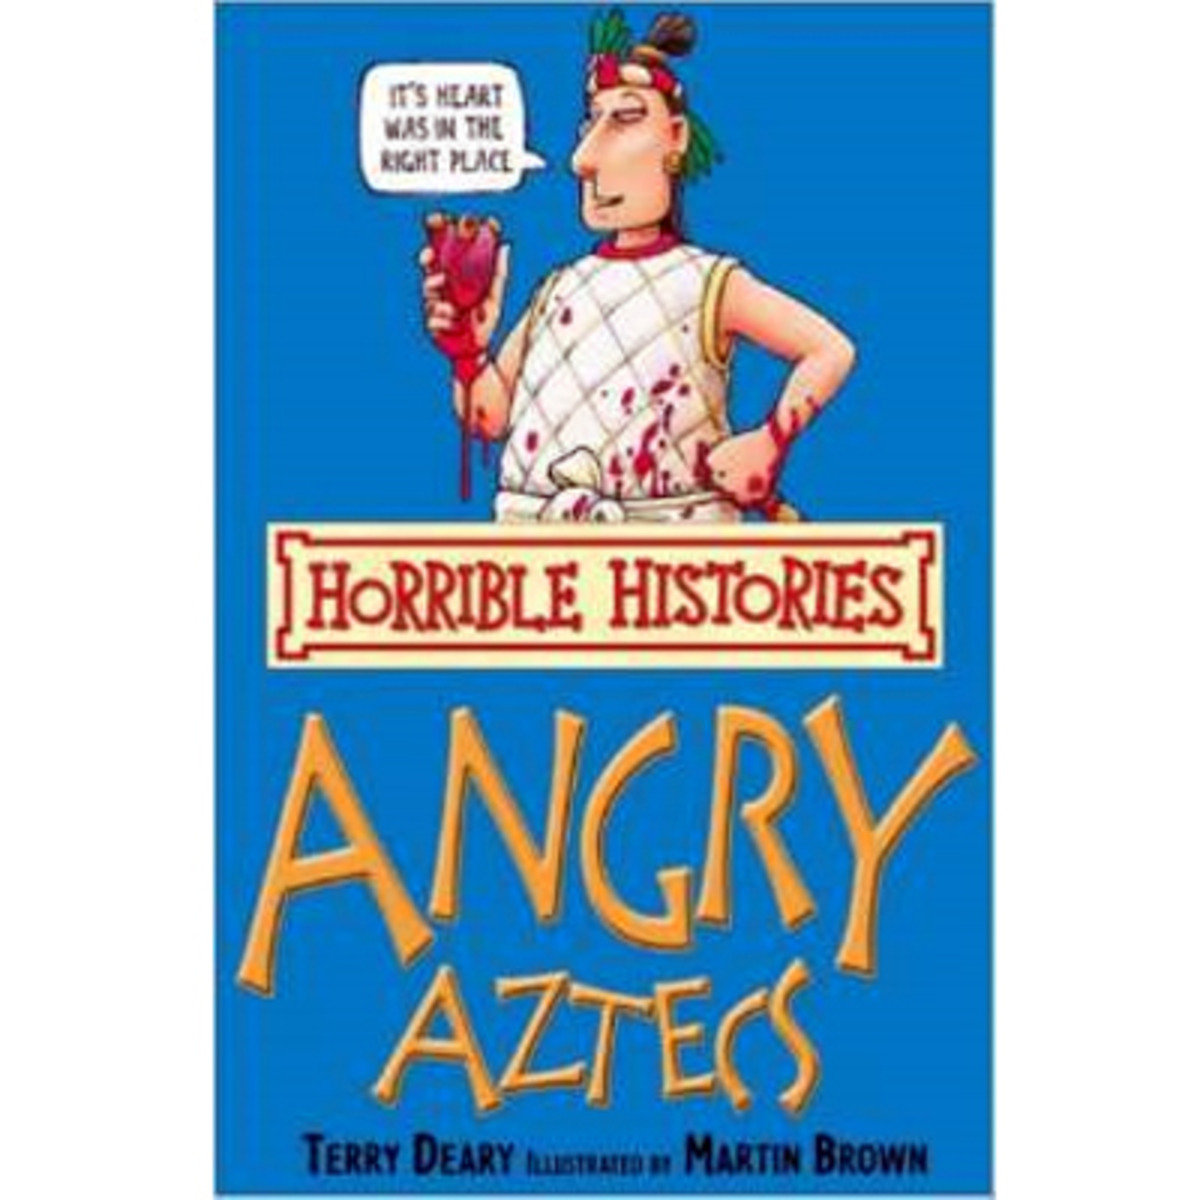 HORRIBLE HISTORIES: ANGRY AZTECS 9781407104256